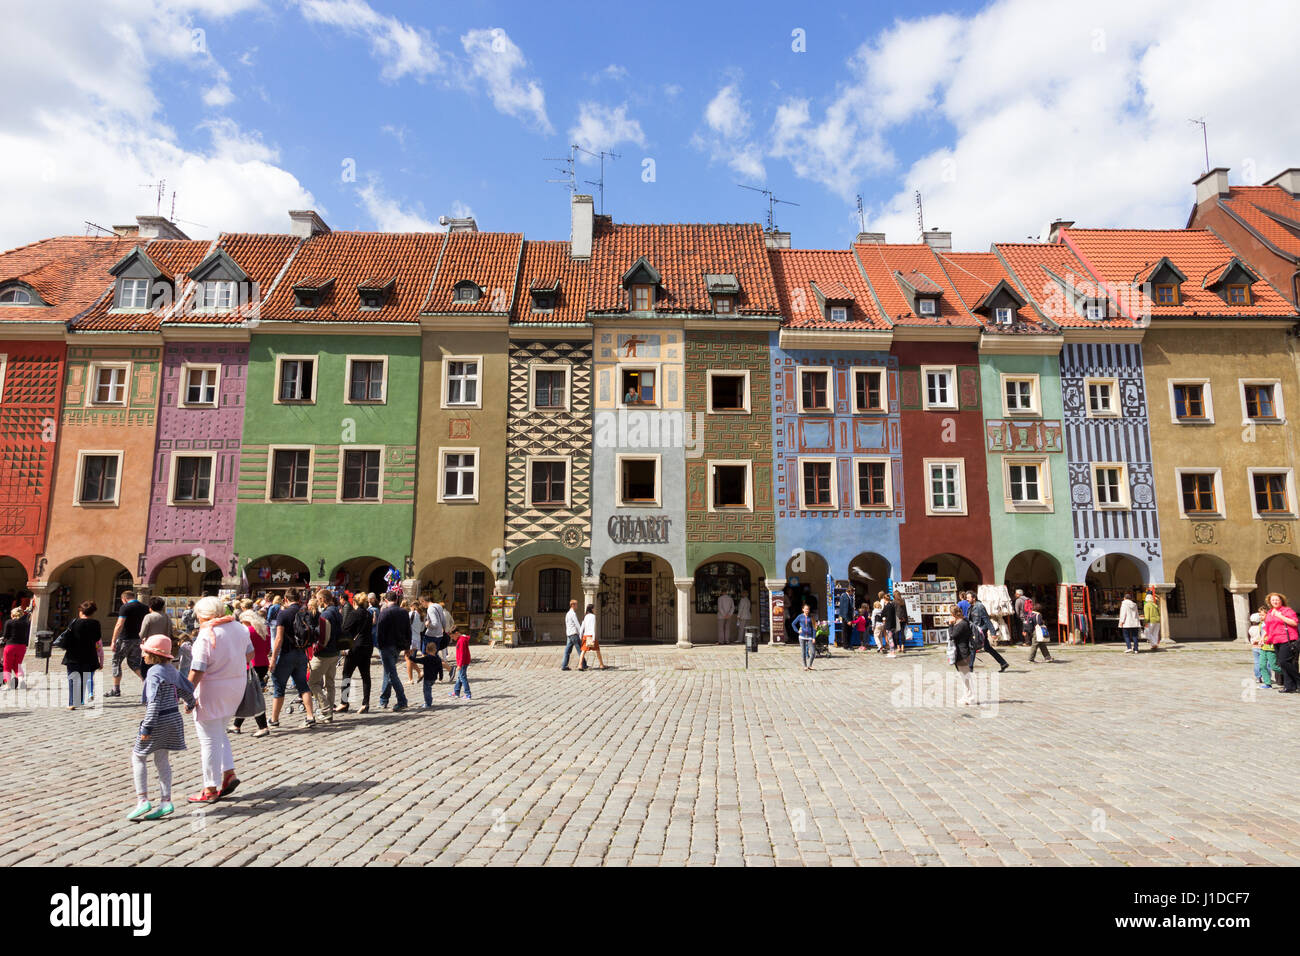 POZNAN, POLAND - AUG 20, 2014: Colorfull houses on the central square in Poznan, Poland. The city is the 4th largest Stock Photo